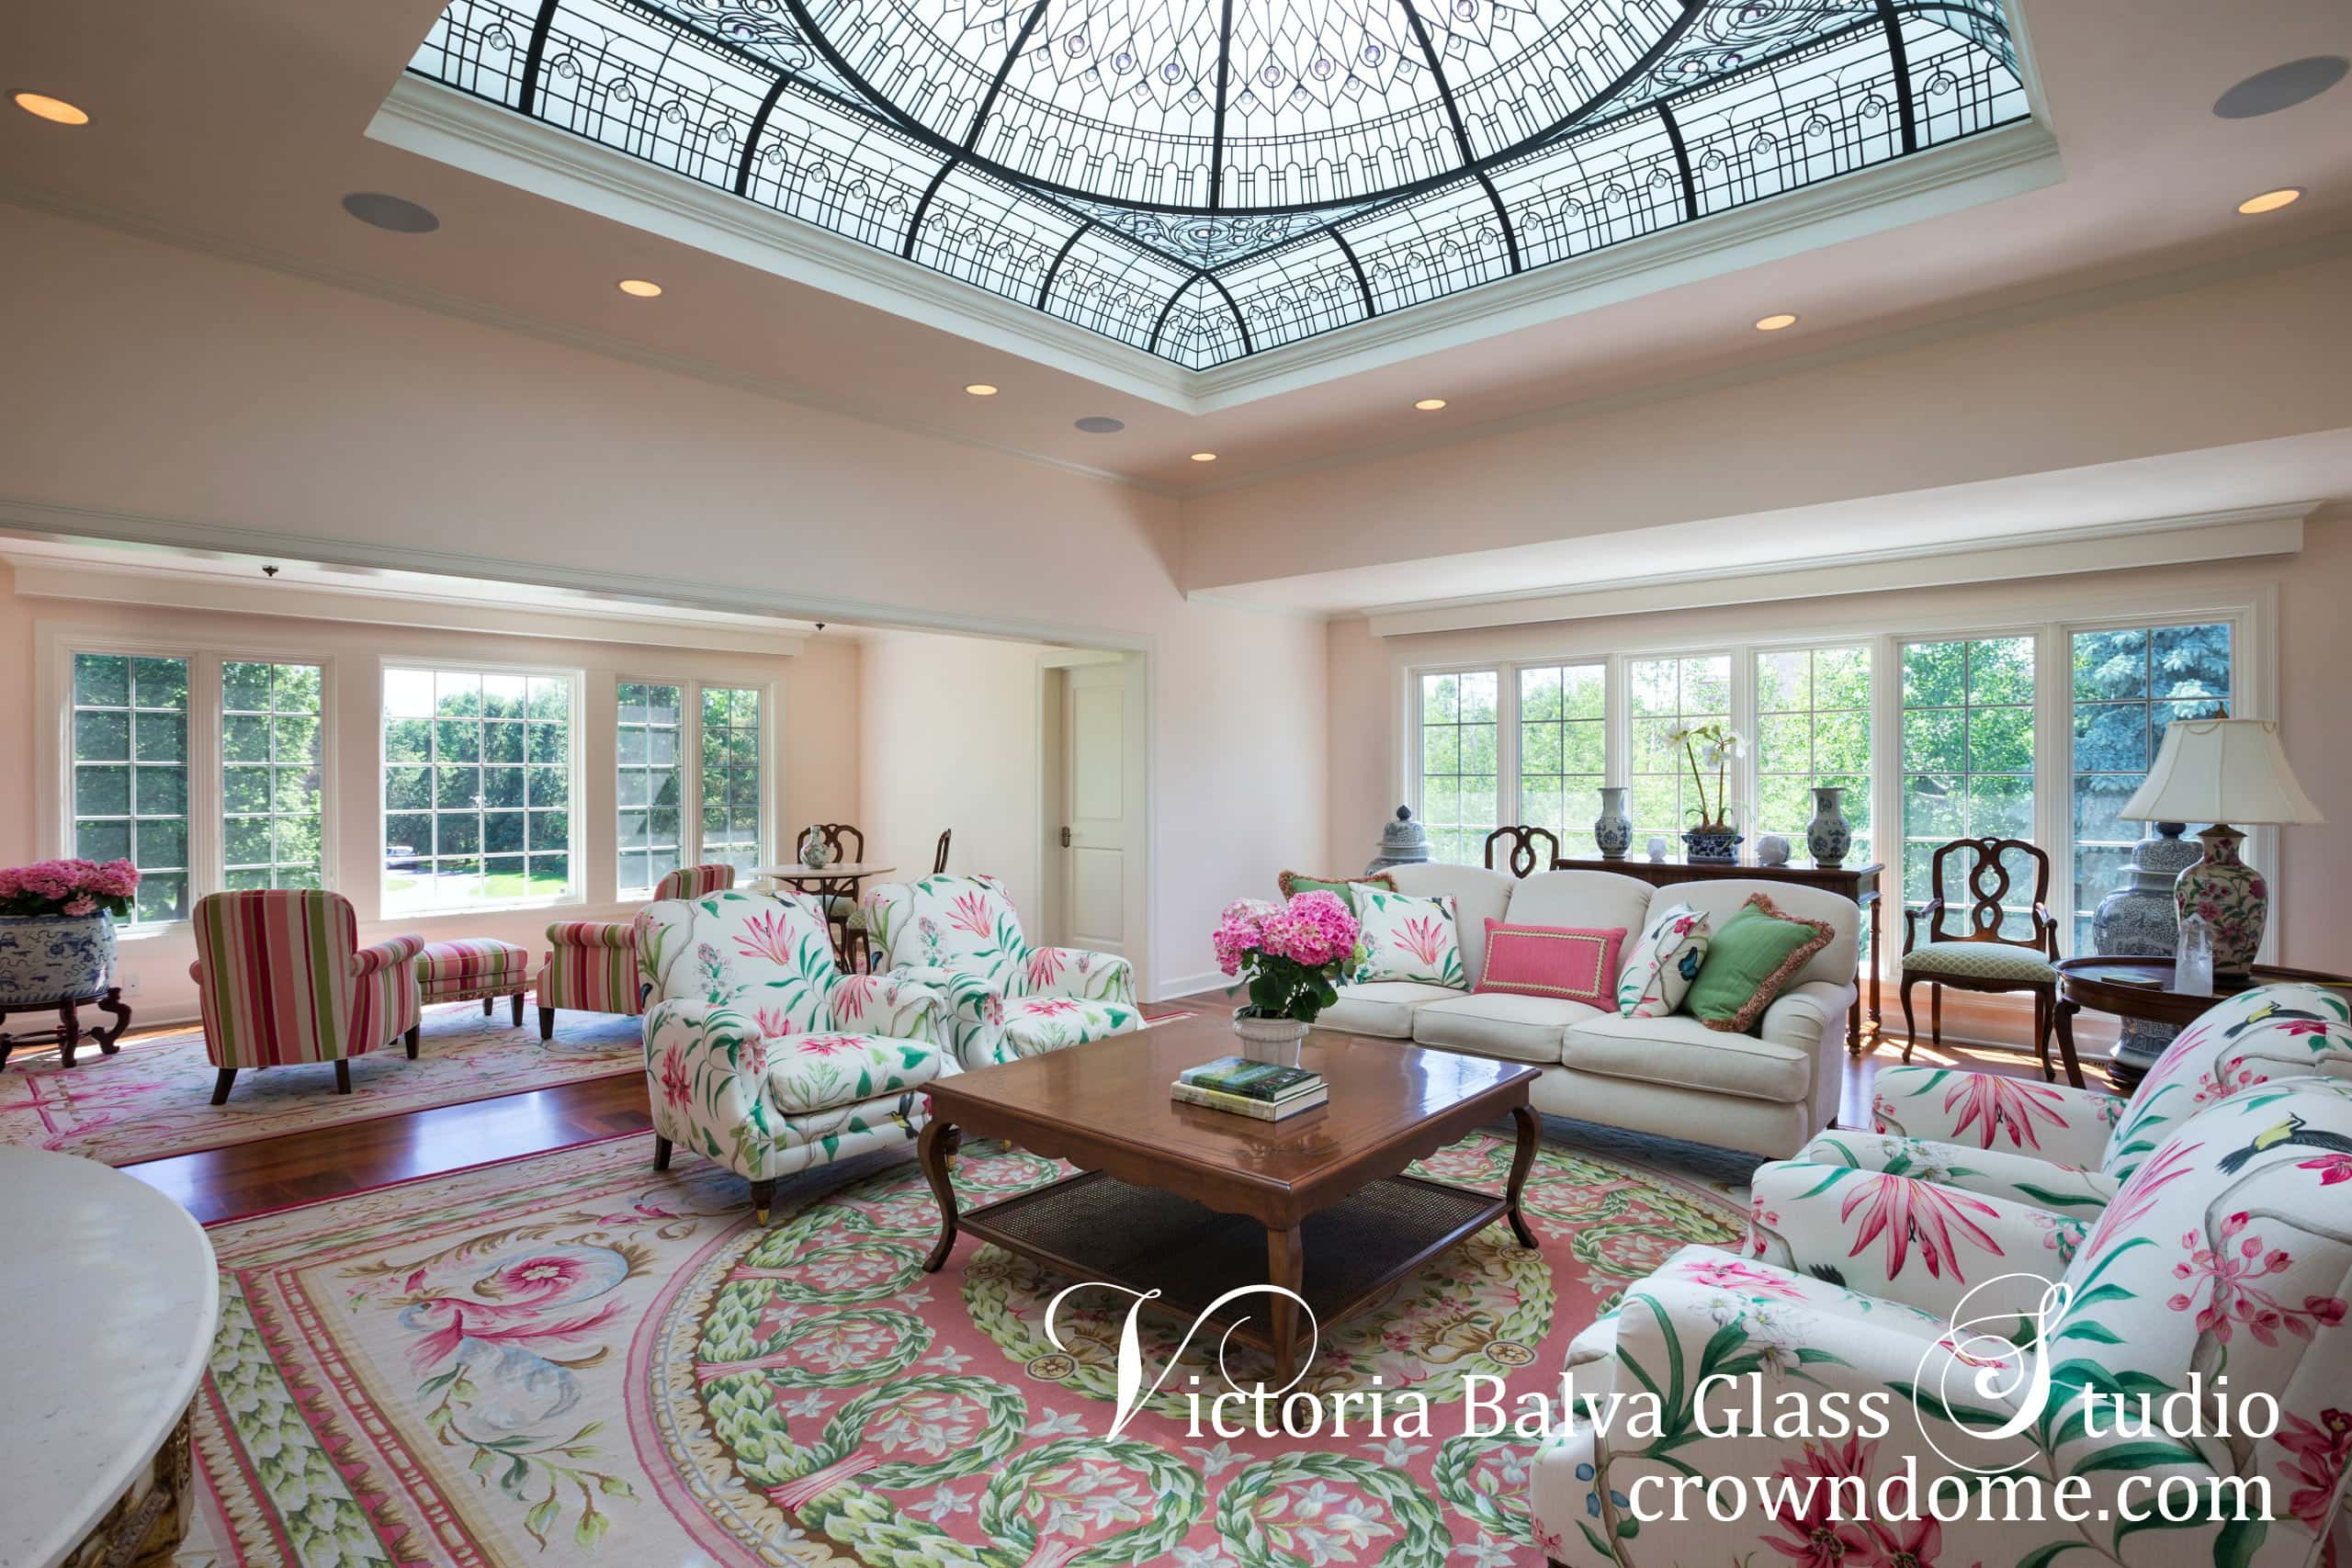 Ornate custom designed stained glass dome ceiling for a great room of a private residence in Minneapolis,